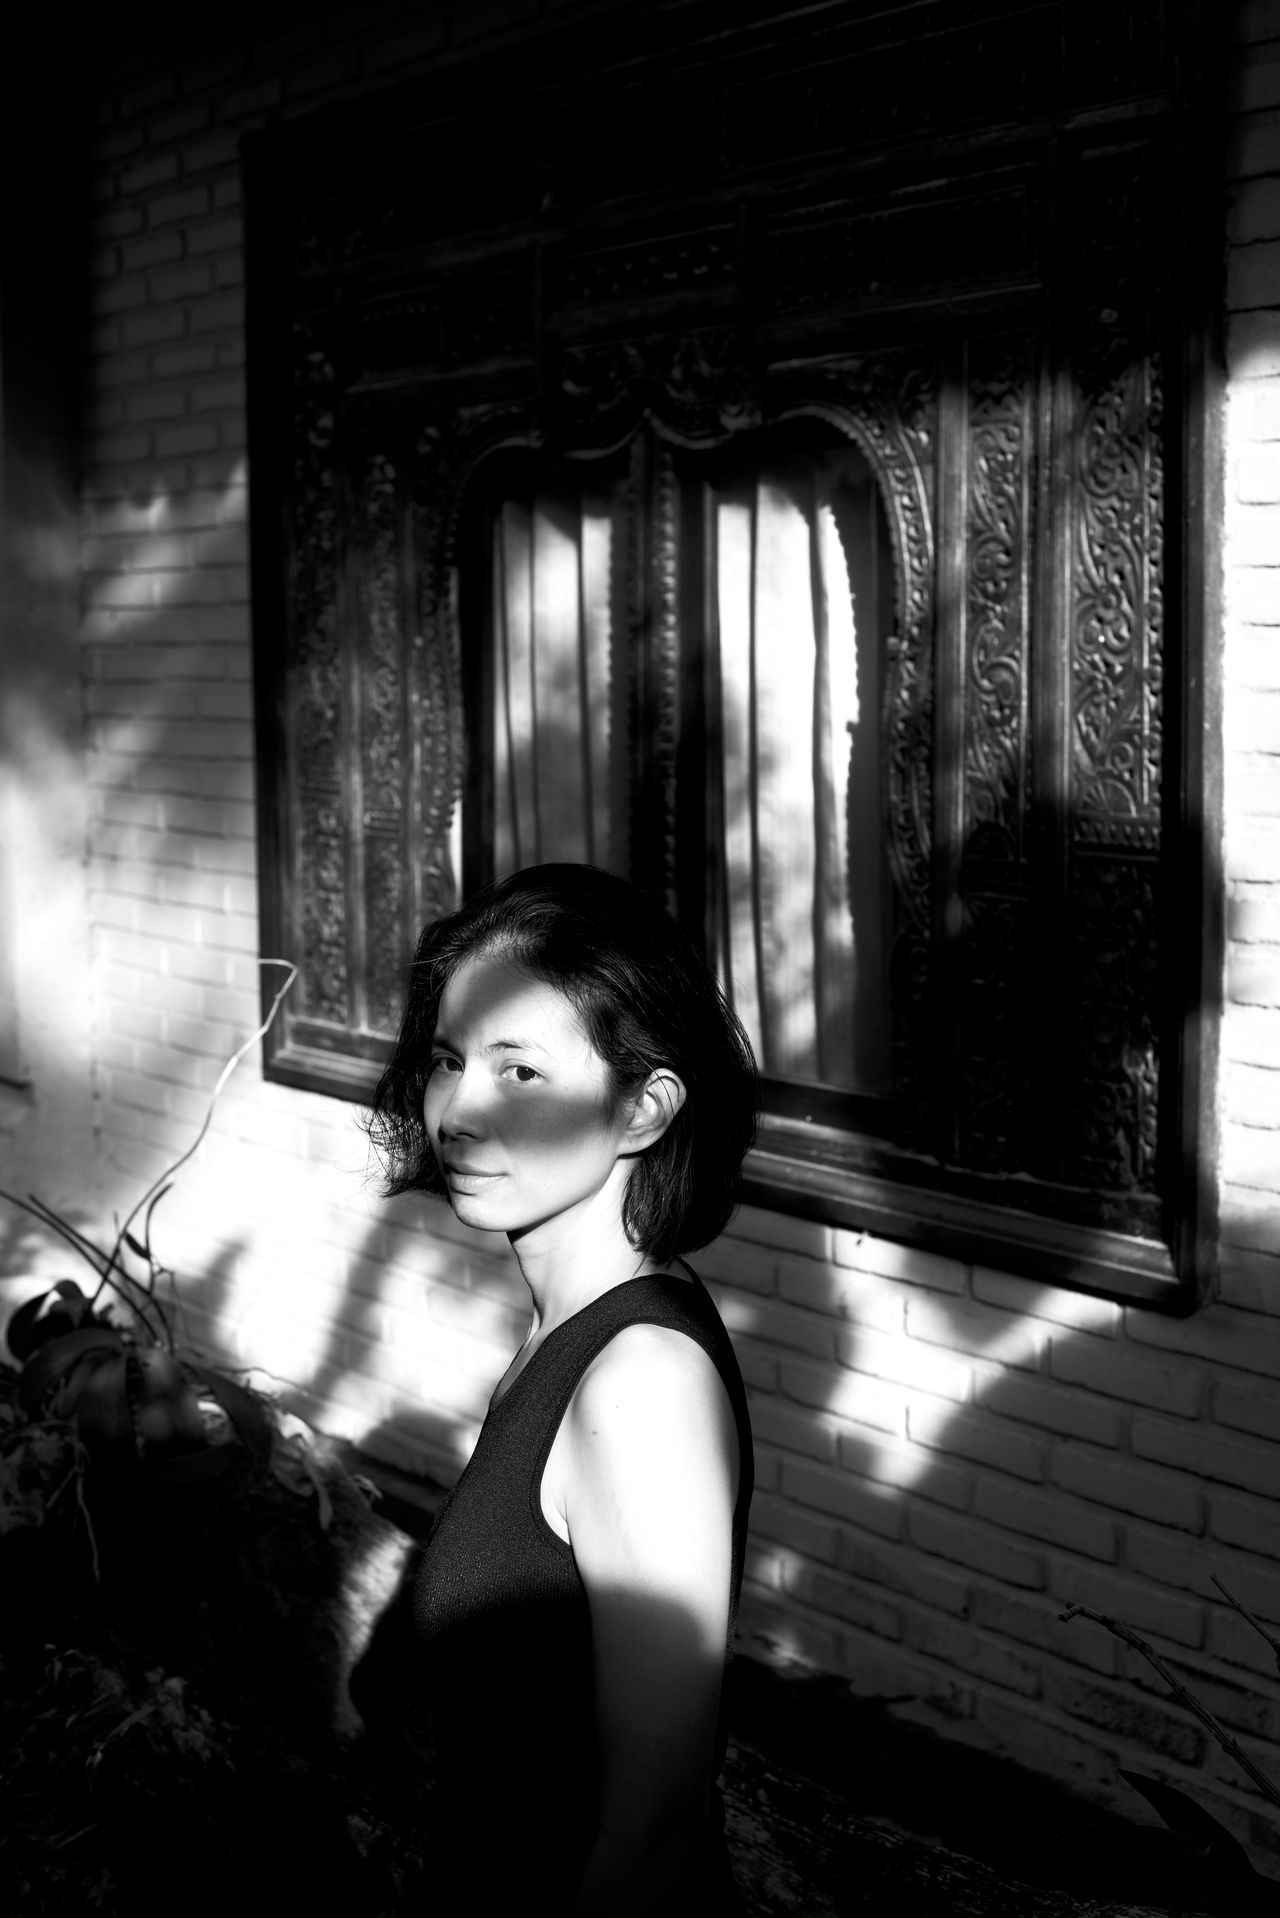 bali mornings Asian Girl B&W Portrait Bali Bali, Indonesia Balinese Architecture Beautiful Nature Beautiful Woman Black & White Chasinglight Indonesia_photography Lifestyles Light And Shadow Looking At Camera Makeportraits Makeportraitsnotwar Monochrome Moody Portrait Natural Light Portrait Nikonphotography One Person People Portrait Real People Young Adult Young Women